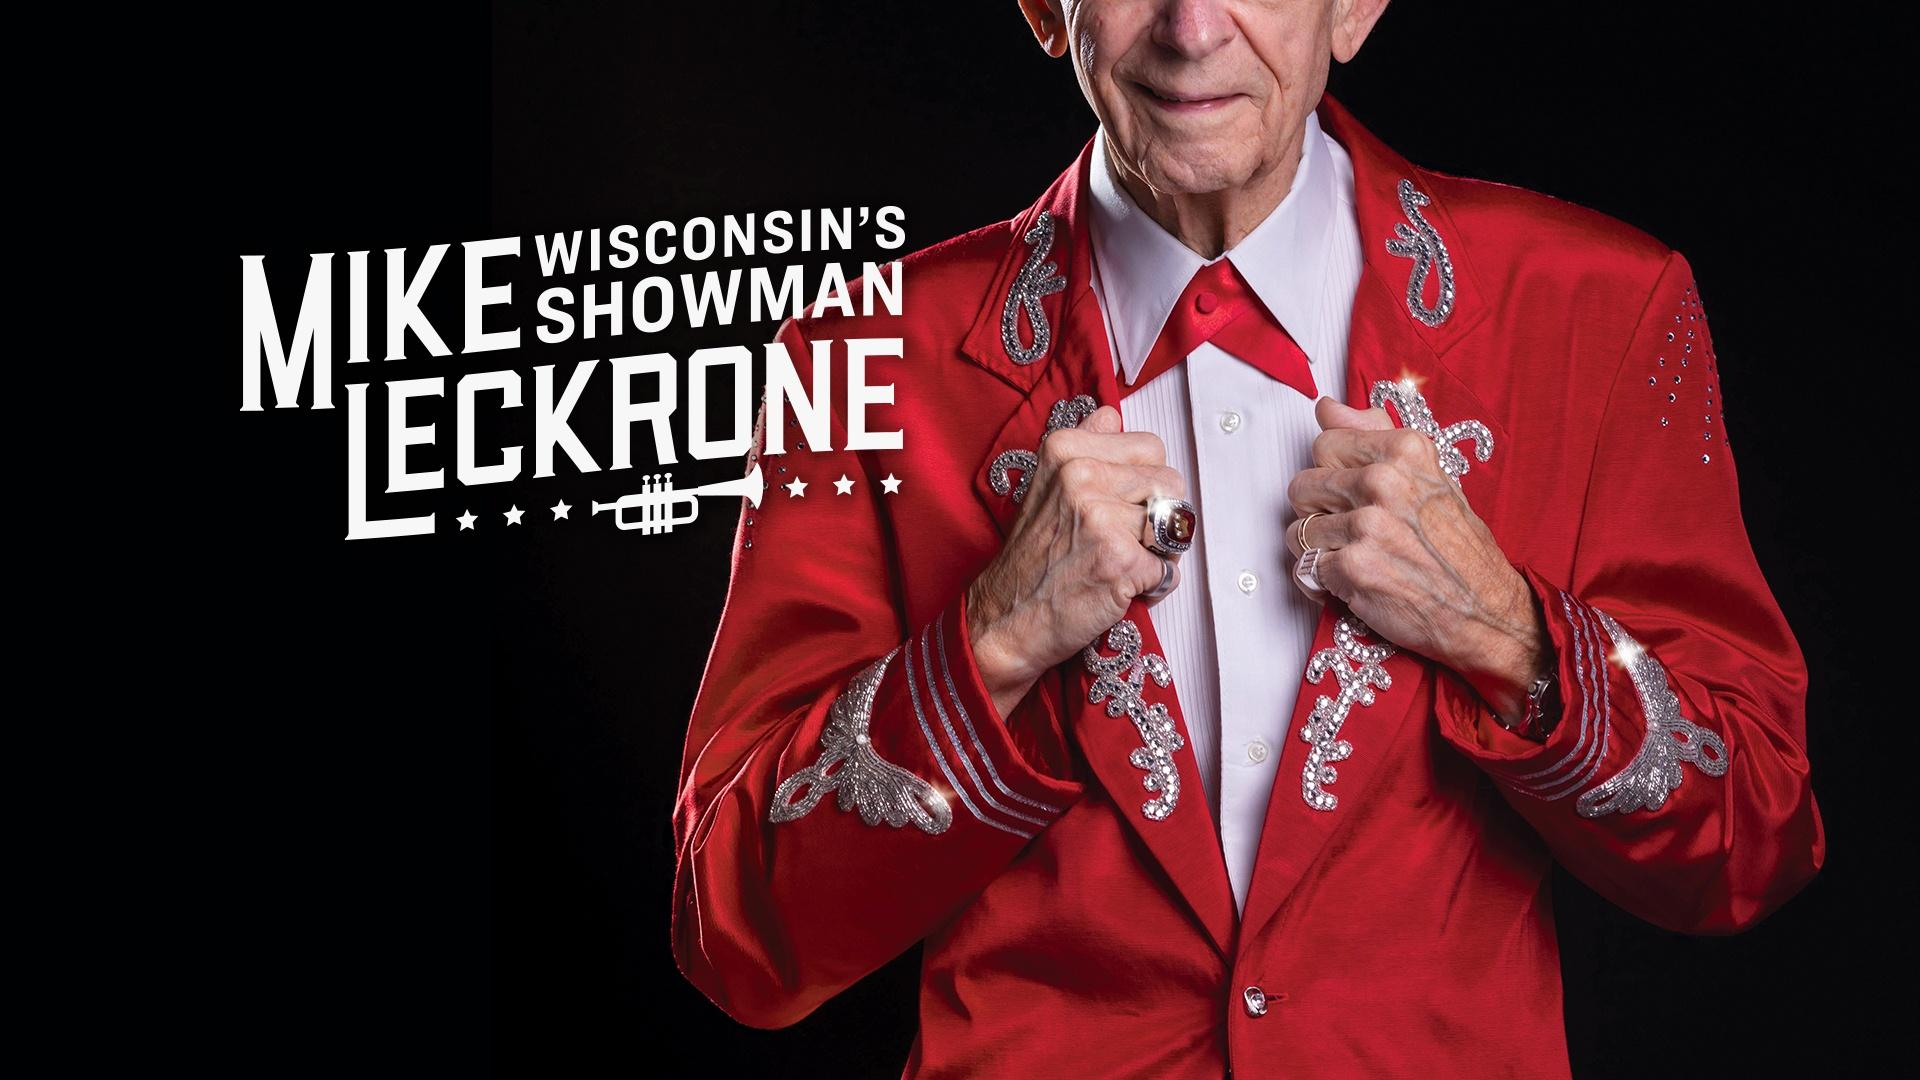 Mike Leckrone: Wisconsin's Showman